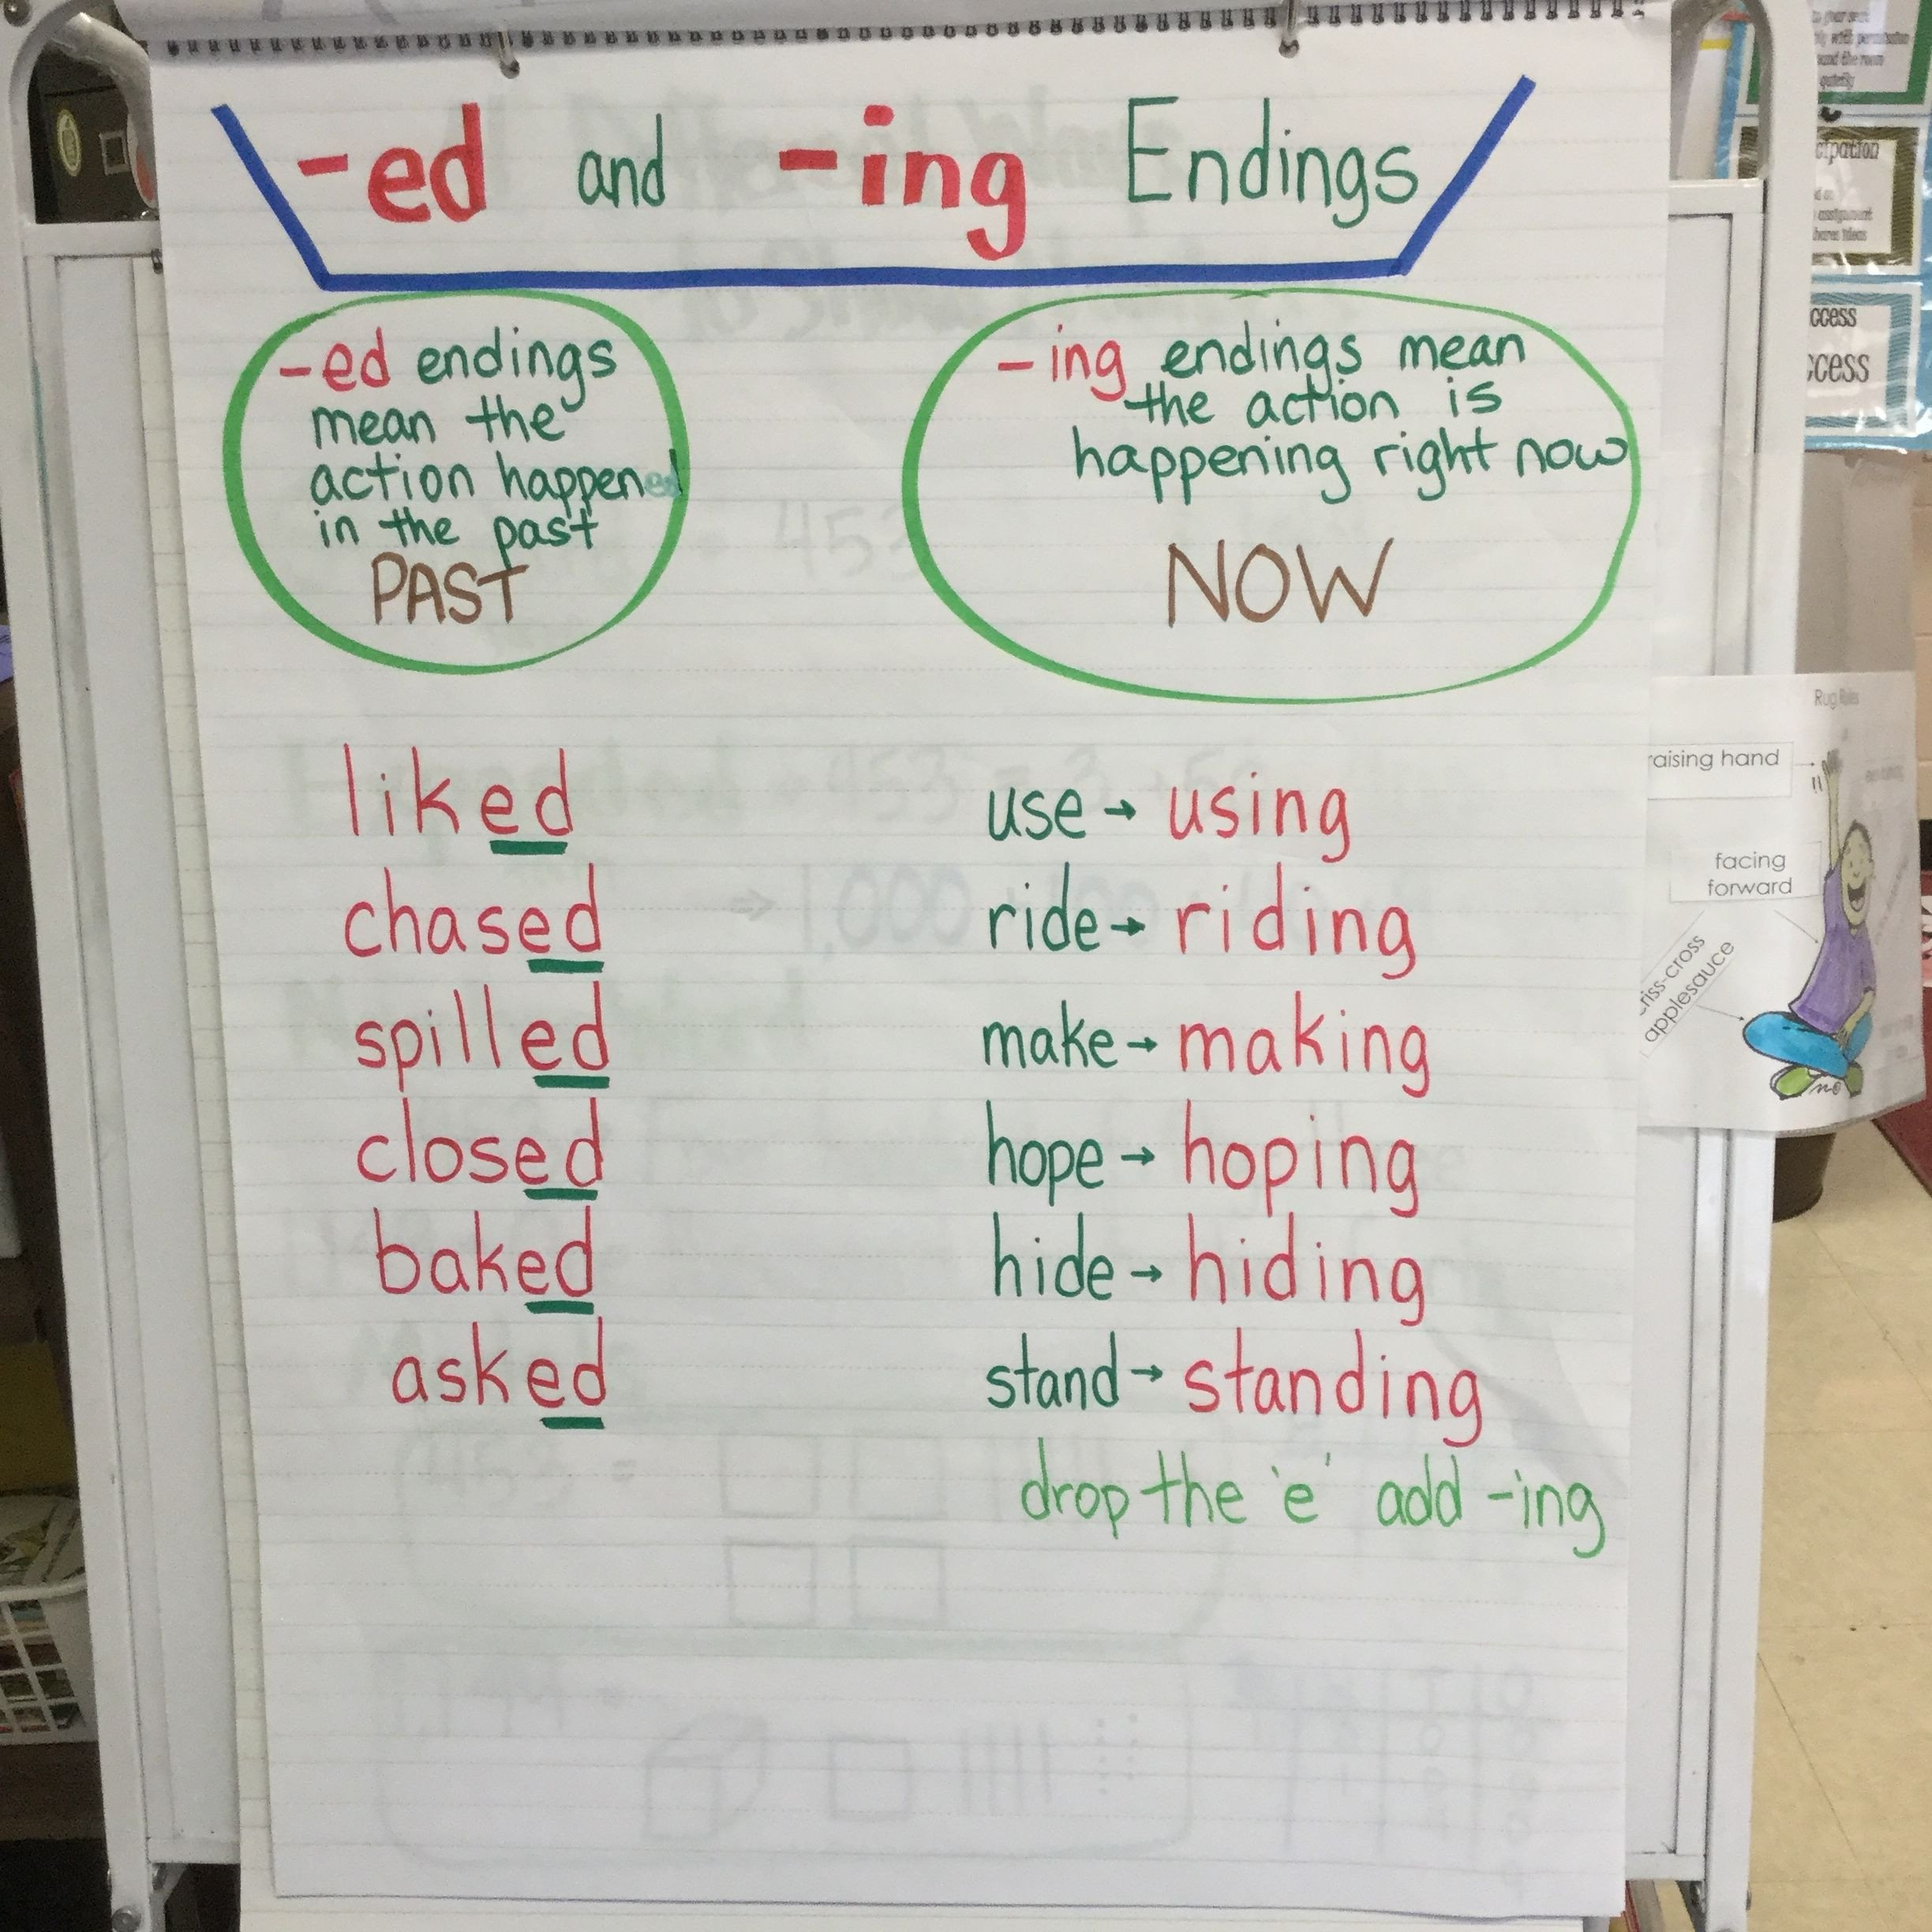 Adding Ed and Ing Worksheets Ed and Ing Endings Drop the E and Add Ing